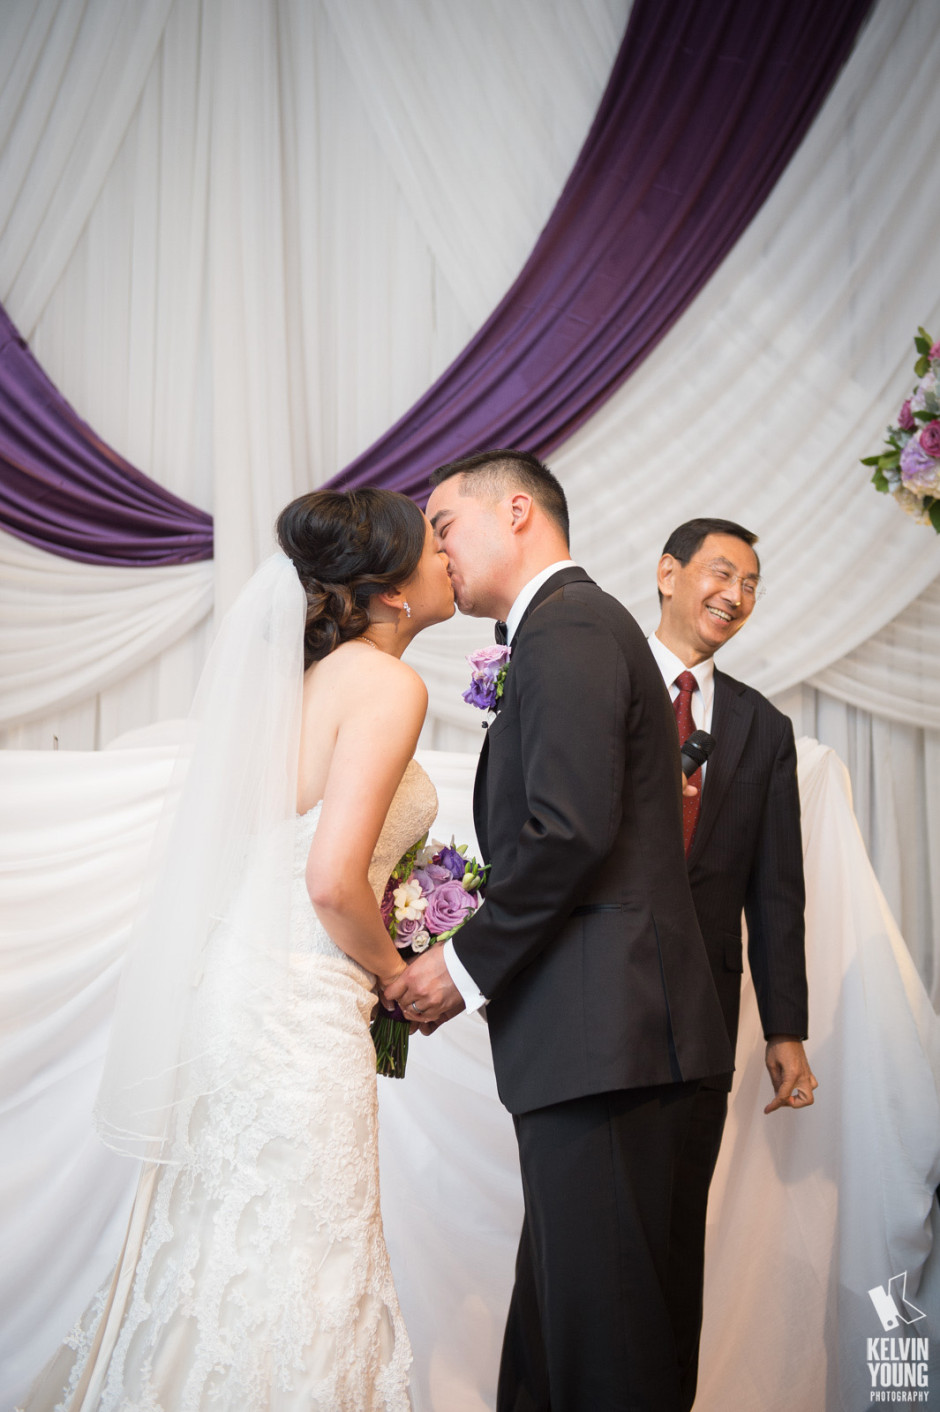 Joyce-Kelvin-Toronto-Markham-Wedding-Photography-030